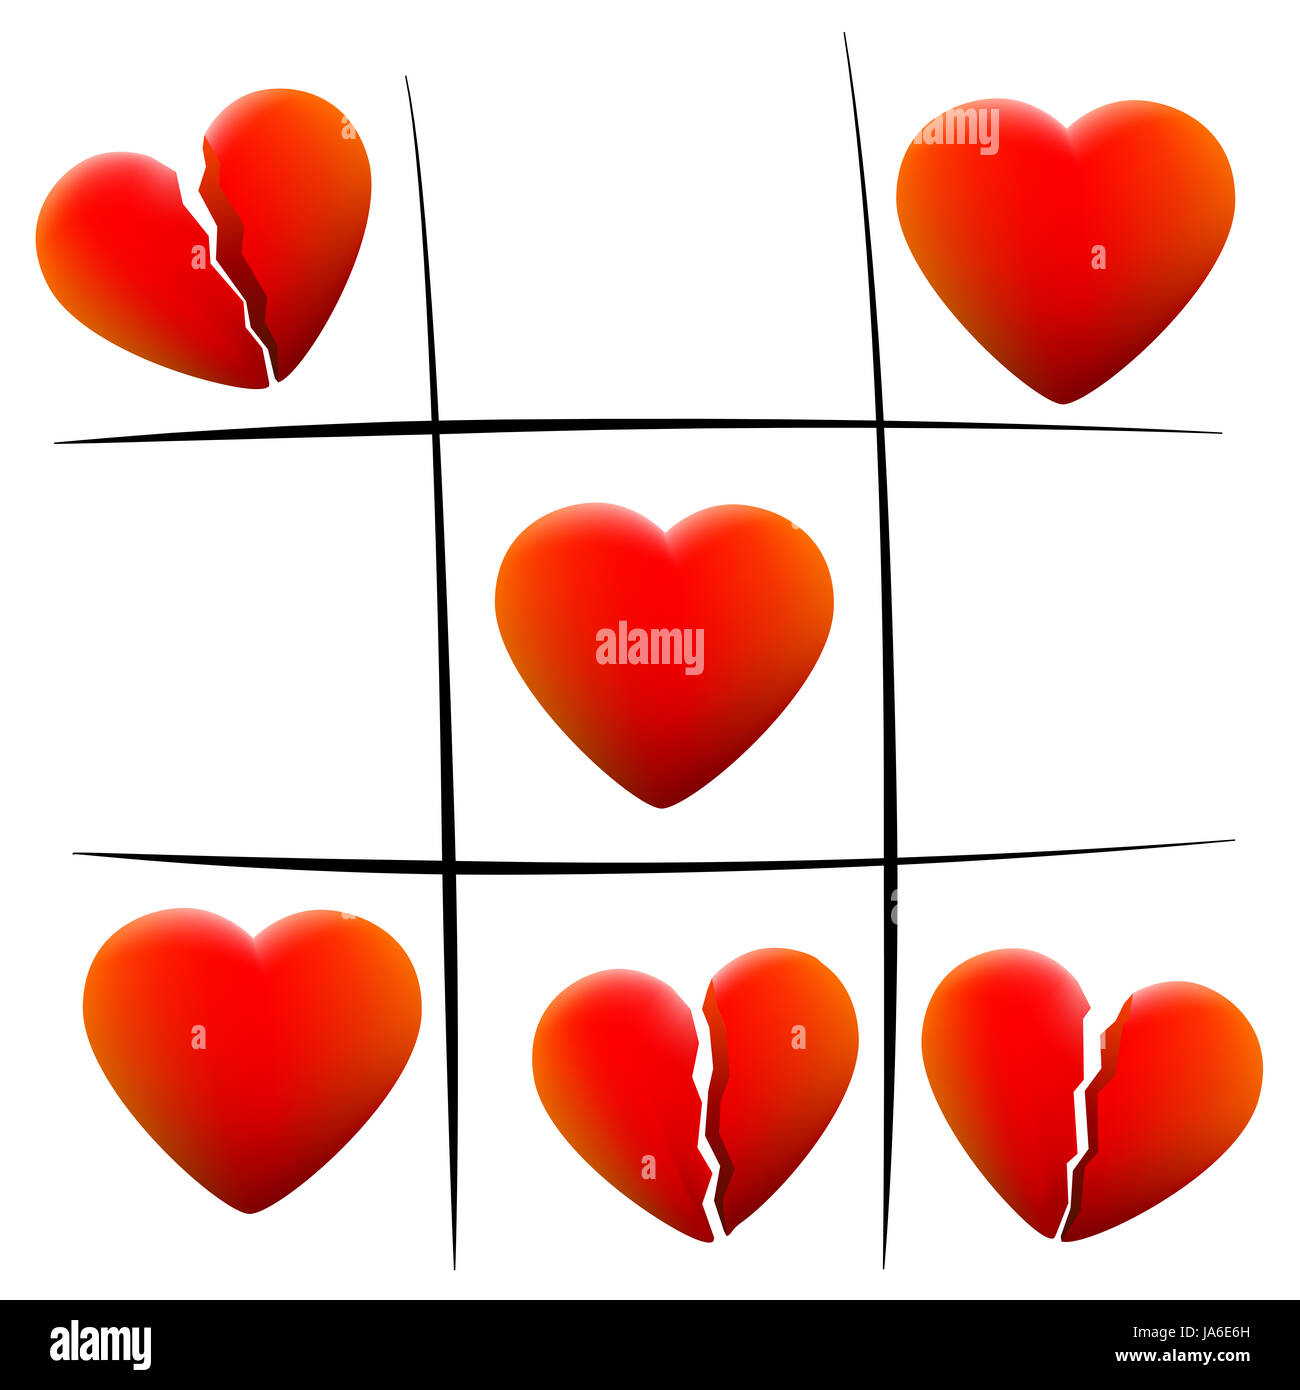 Heartbreak tic tac toe - love hearts and broken hearts - illustration on white background. - Stock Image